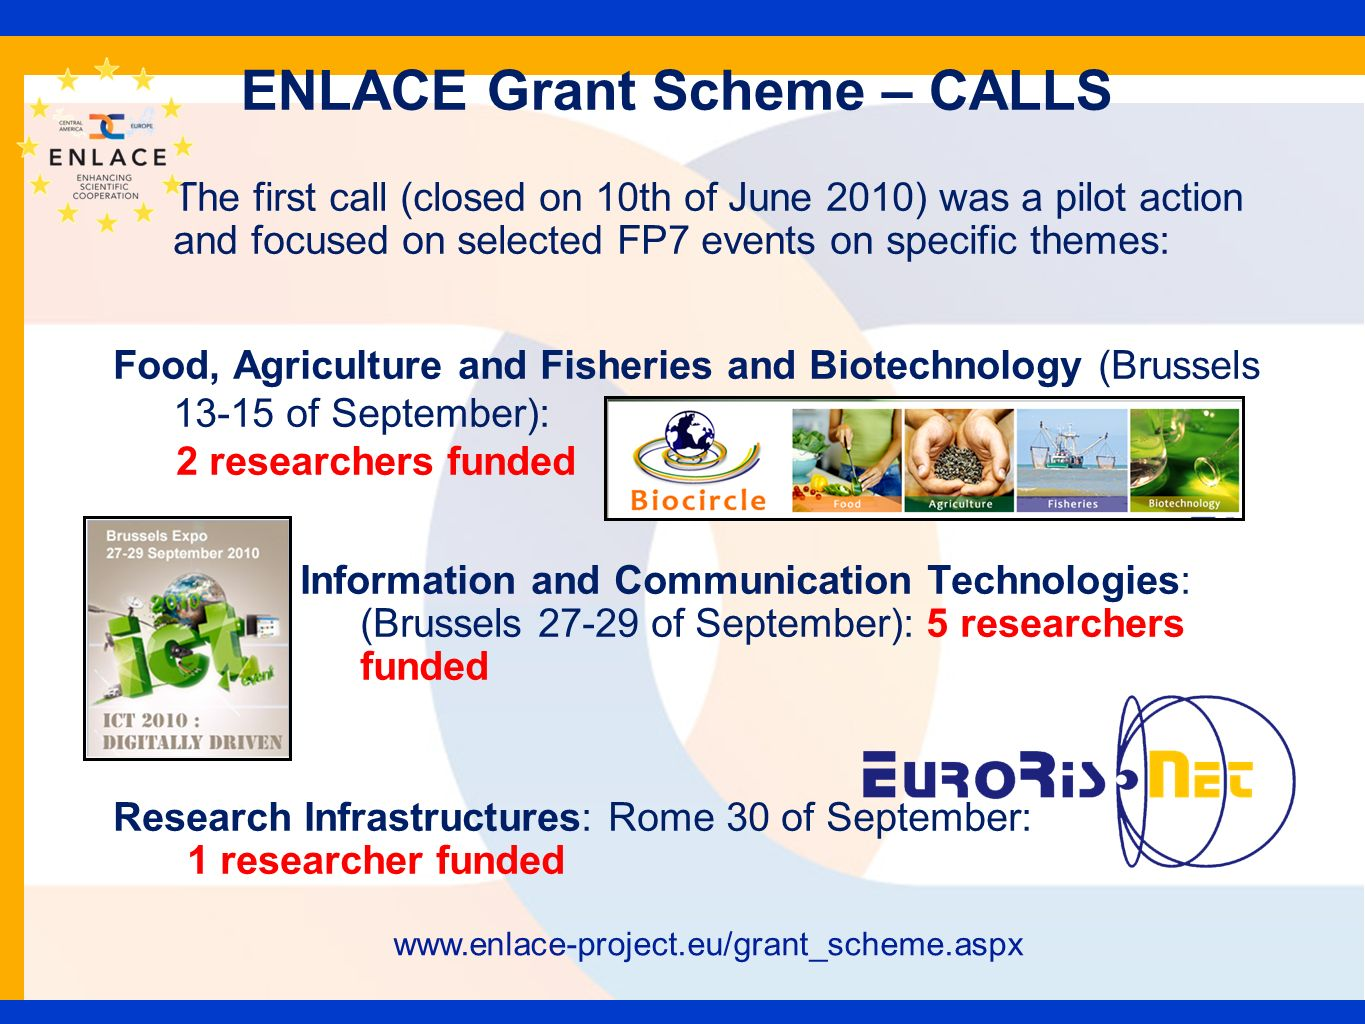 ENLACE Grant Scheme – CALLS The first call (closed on 10th of June 2010) was a pilot action and focused on selected FP7 events on specific themes: Food, Agriculture and Fisheries and Biotechnology (Brussels of September): 2 researchers funded Information and Communication Technologies: (Brussels of September): 5 researchers funded Research Infrastructures: Rome 30 of September: 1 researcher funded